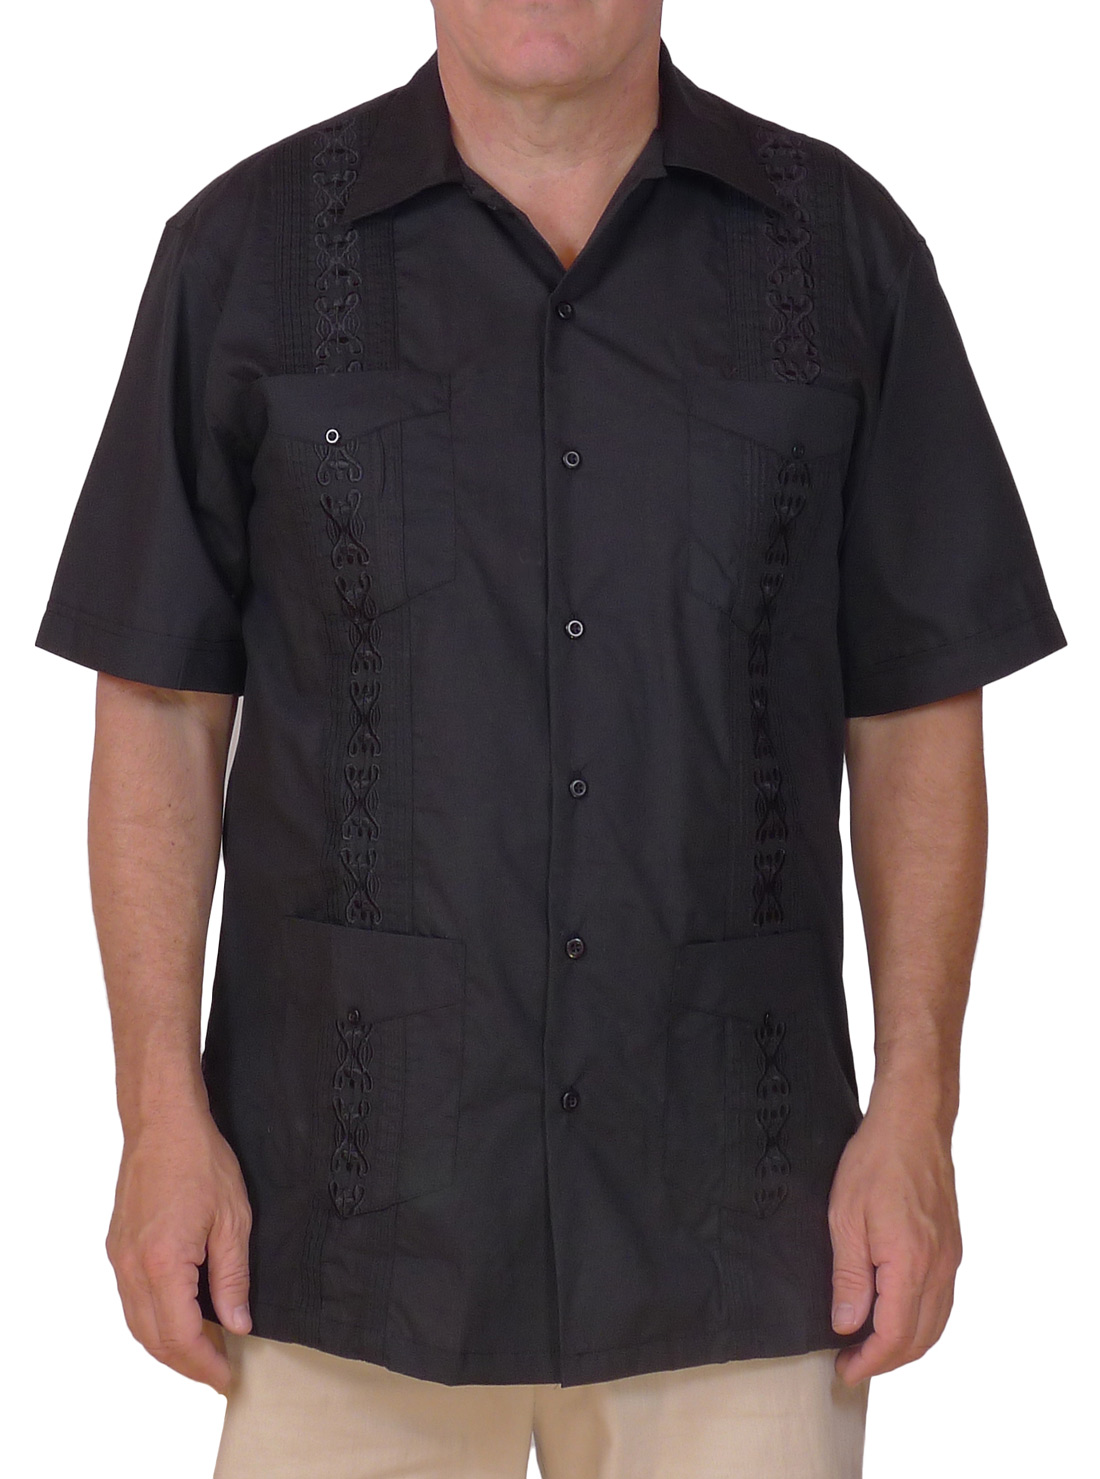 Image of Black Embroidered